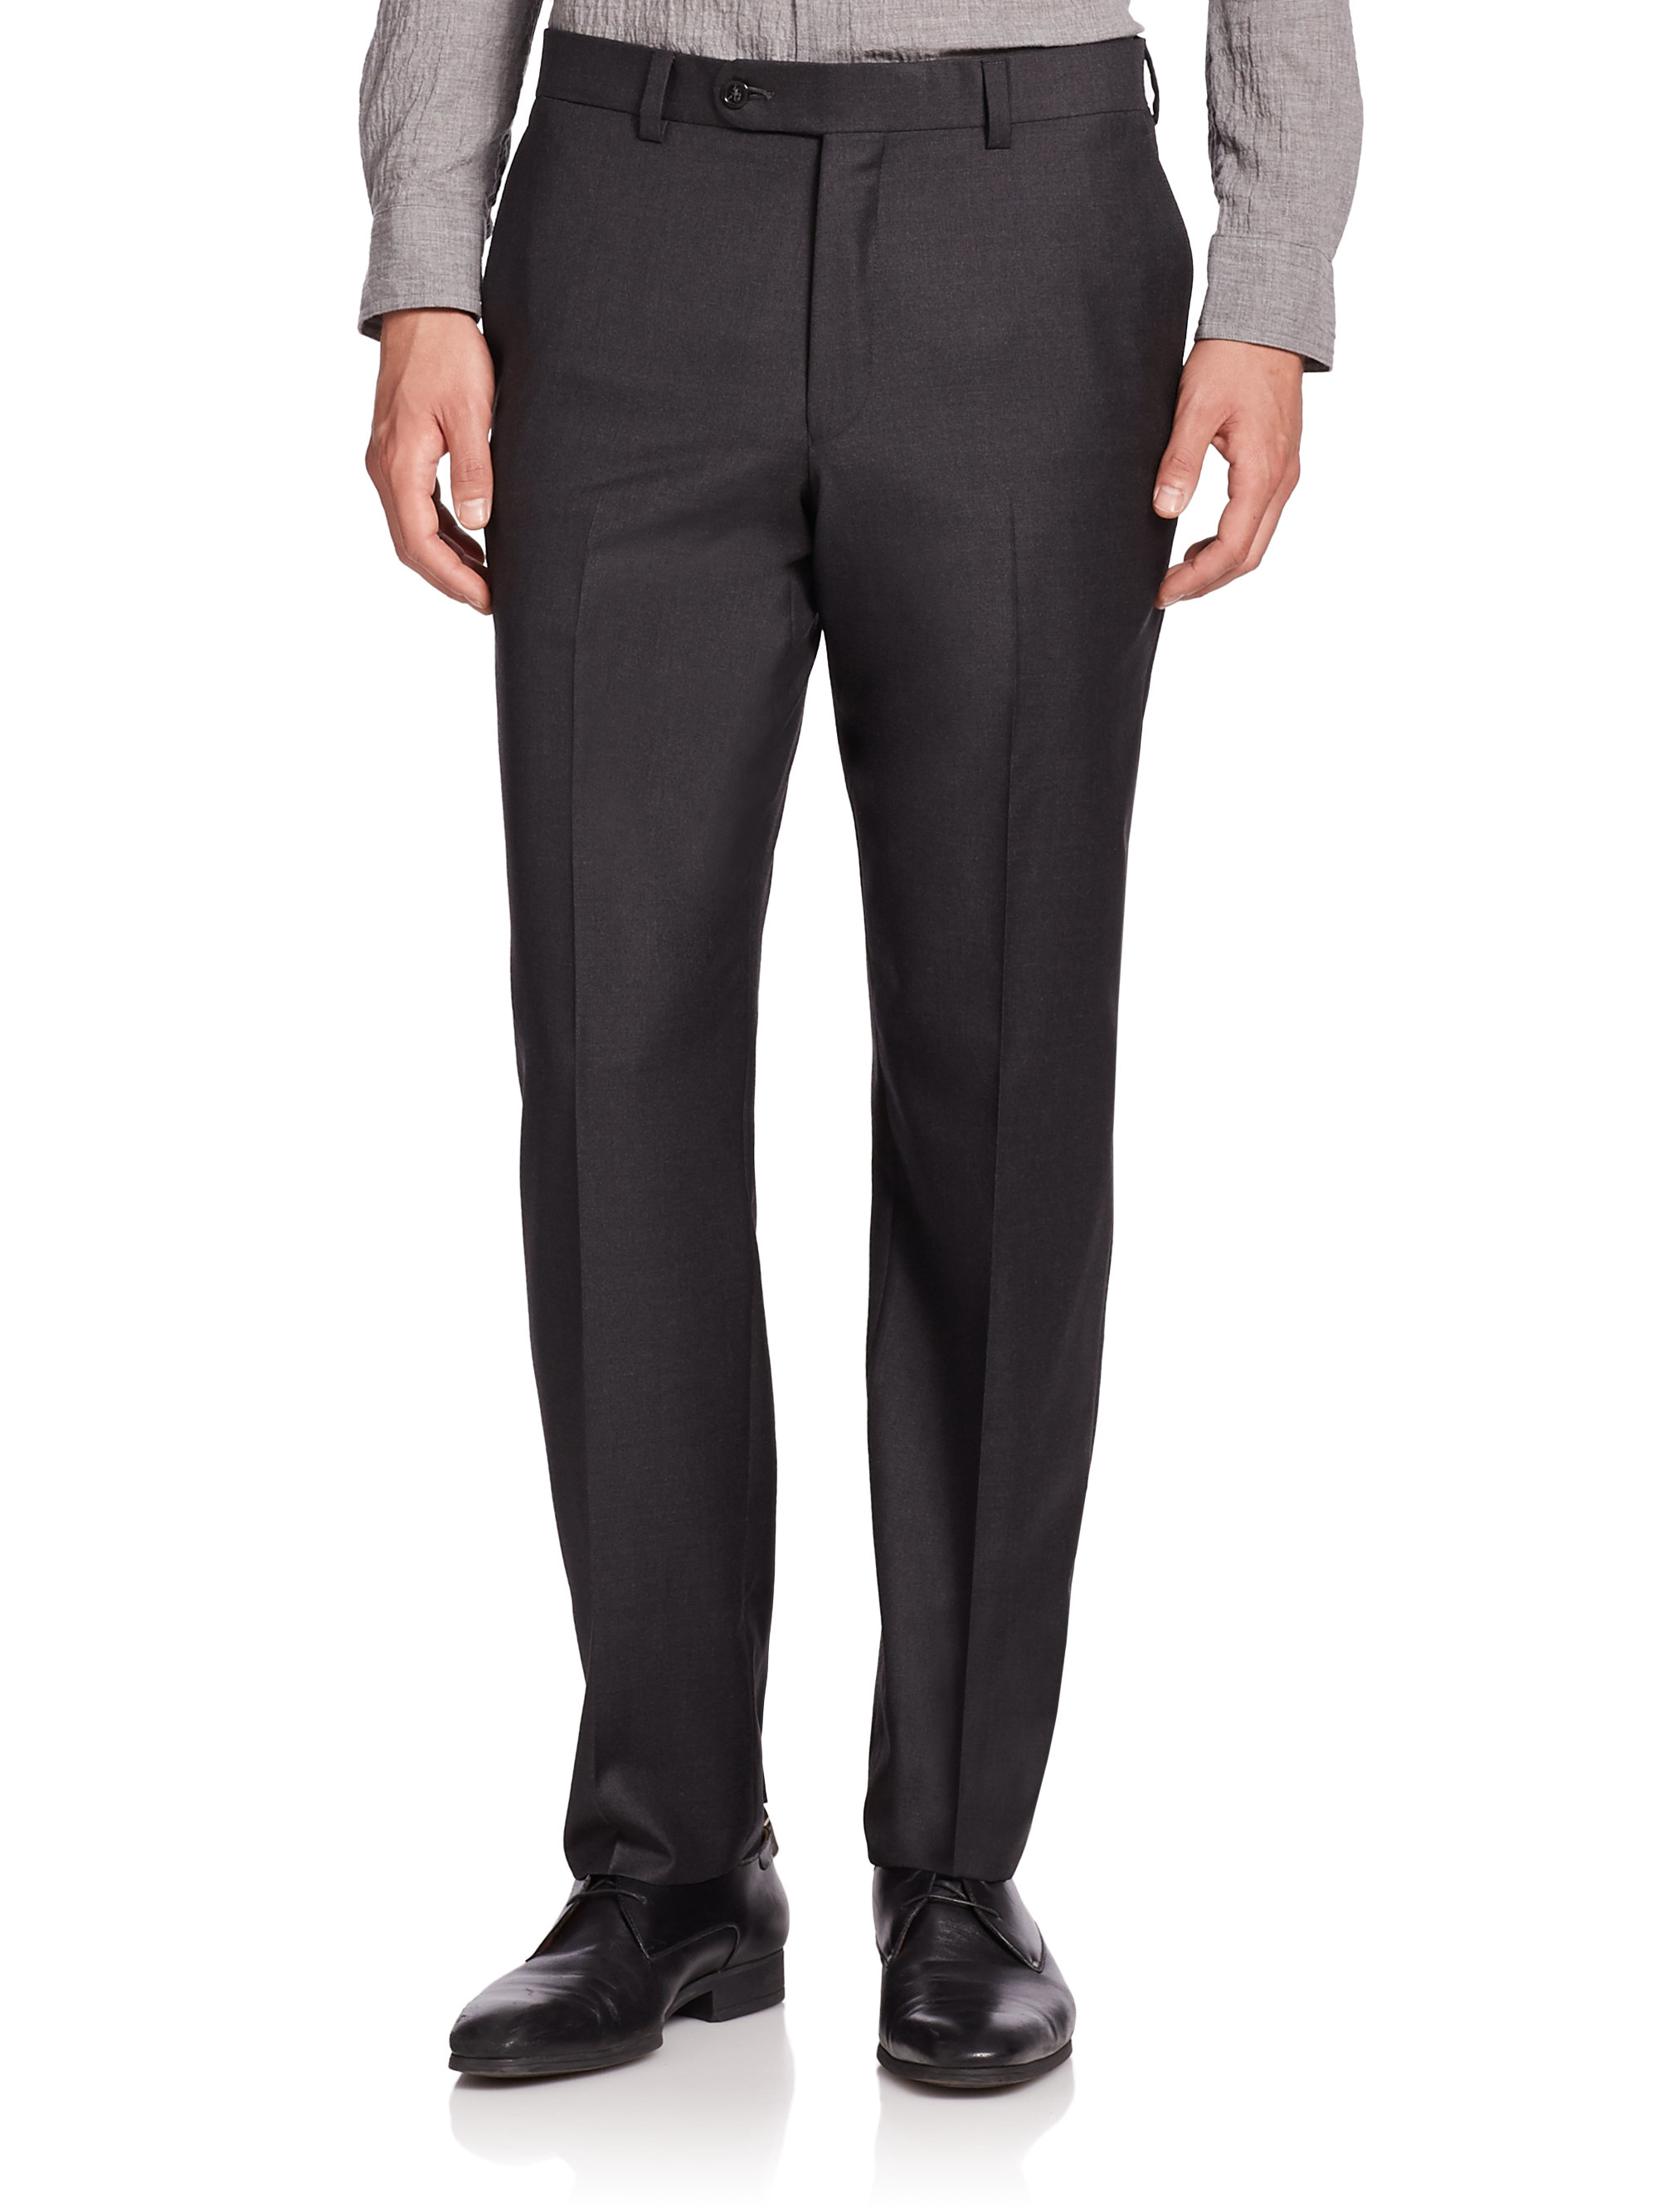 Saks fifth avenue Wool Flat-front Pants in Gray for Men